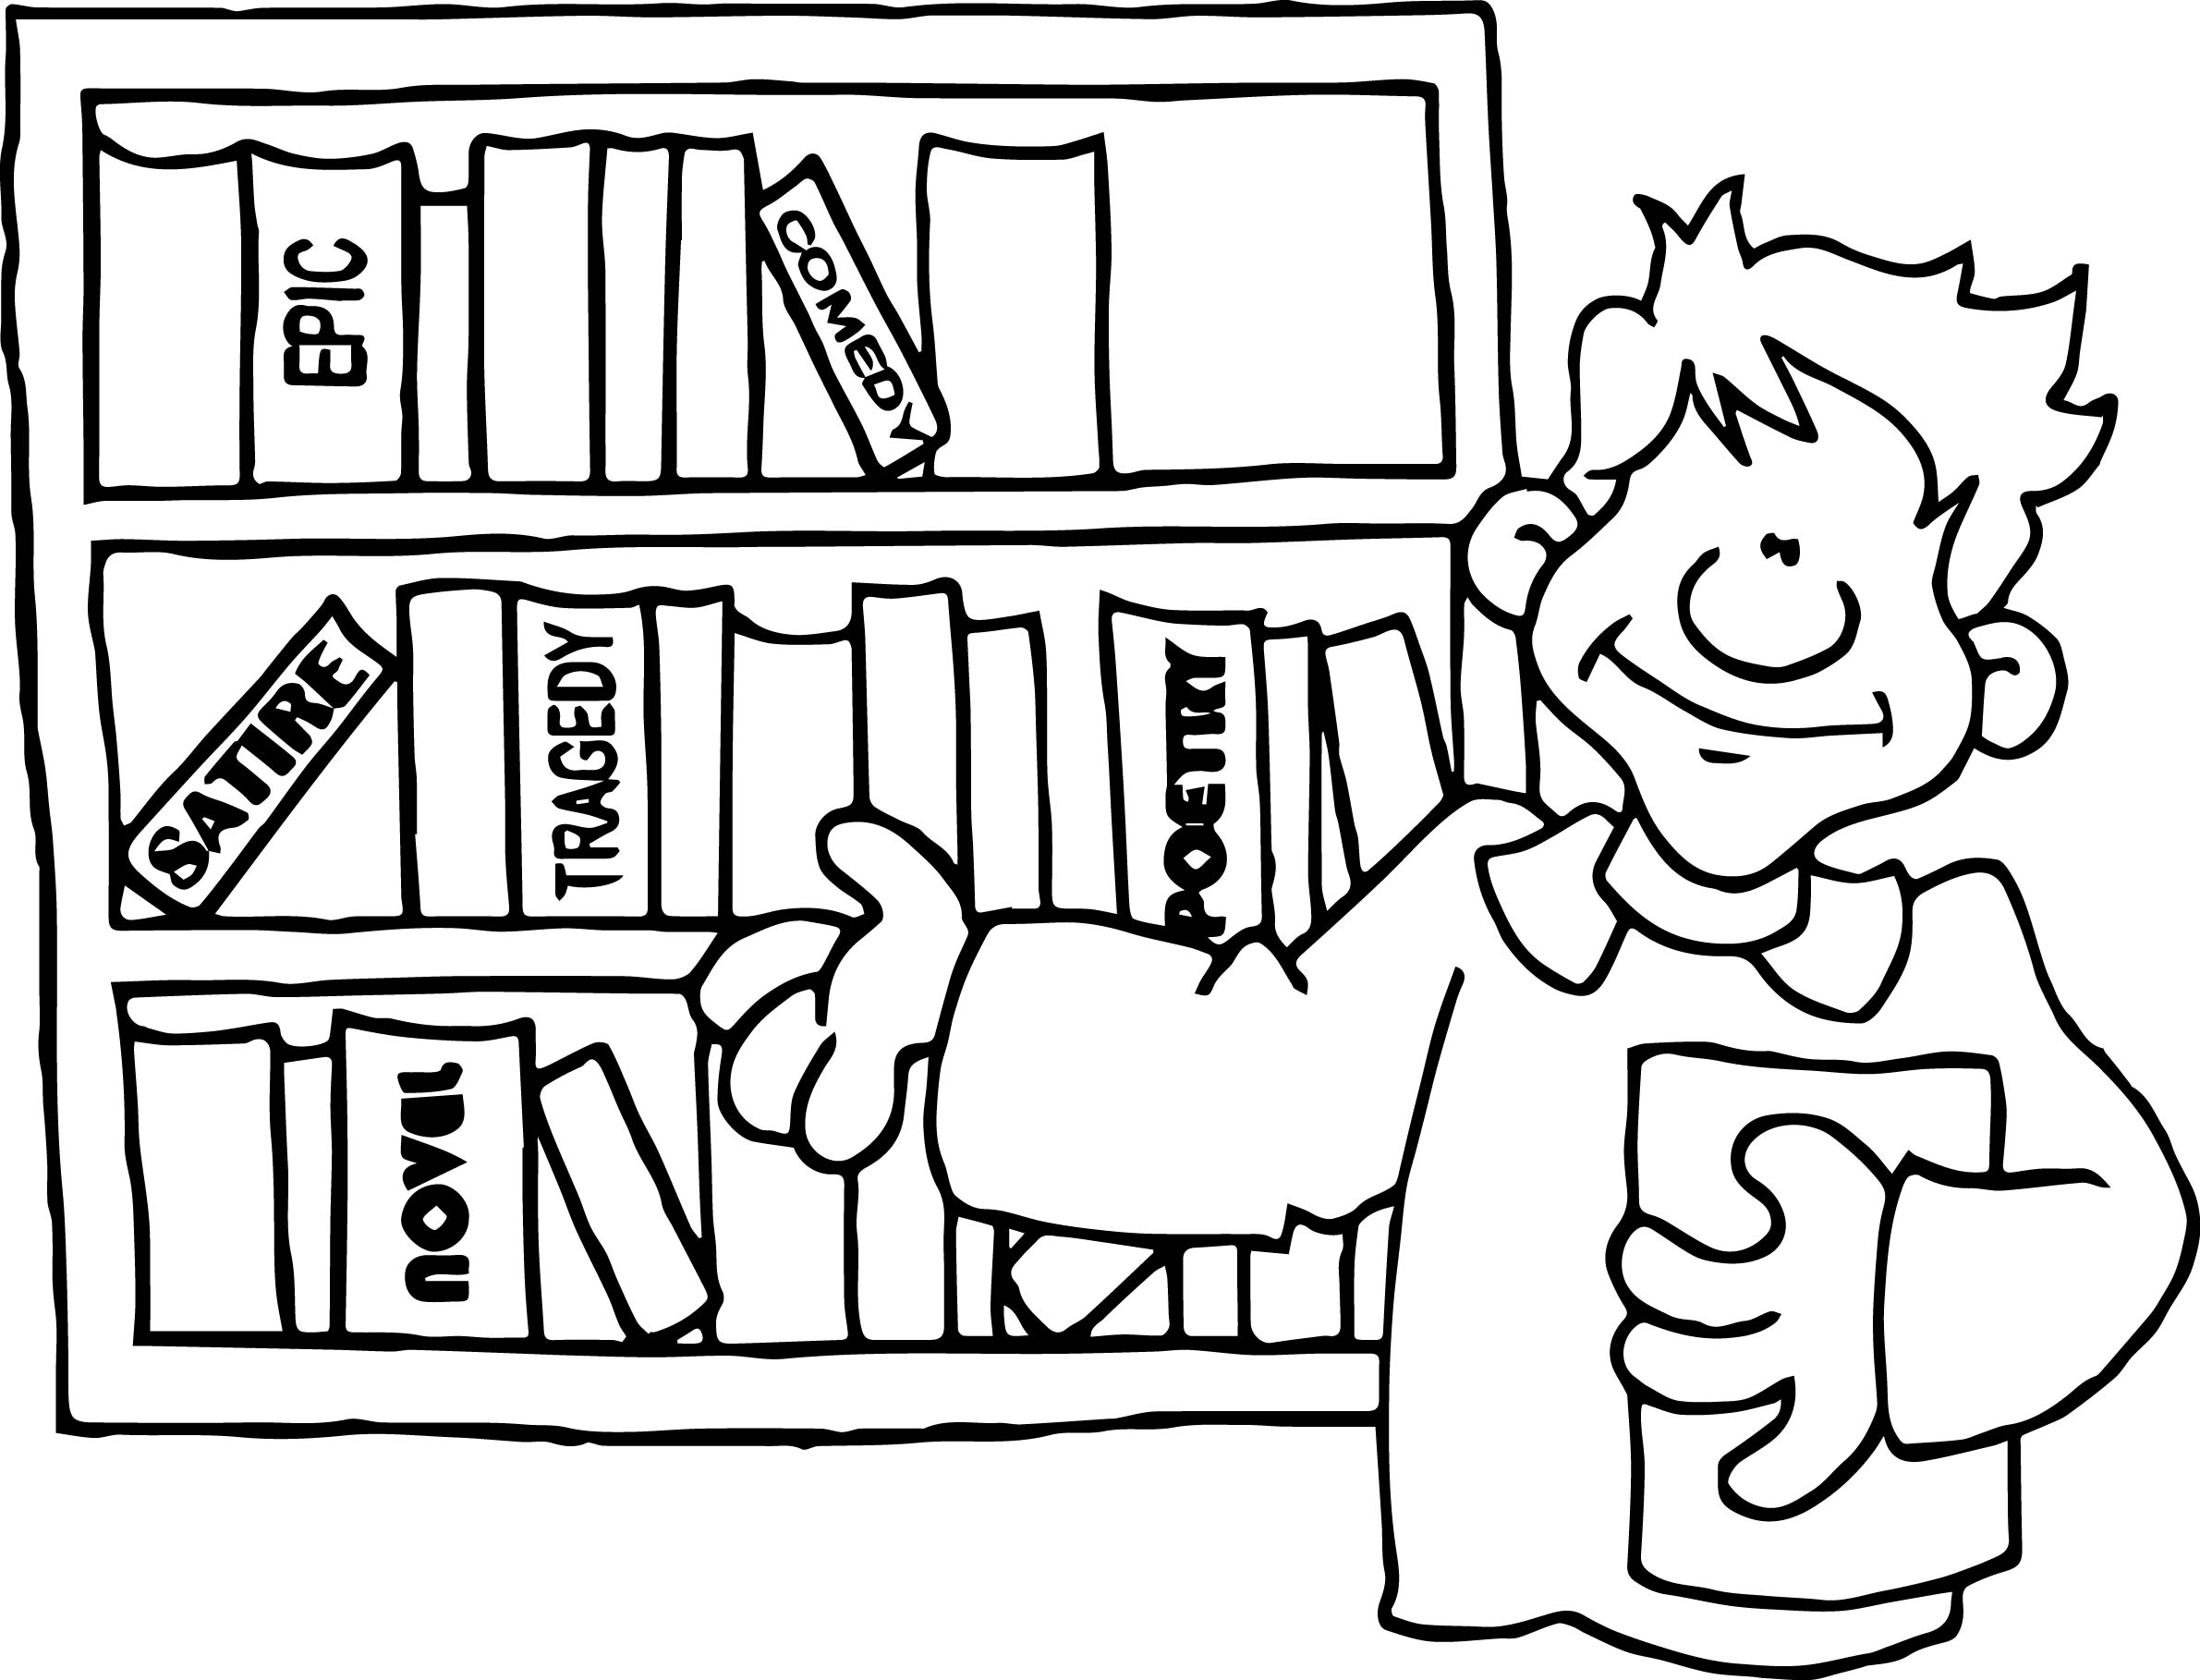 Books Amp Bookshelves For Kids Teachers Coloring Page